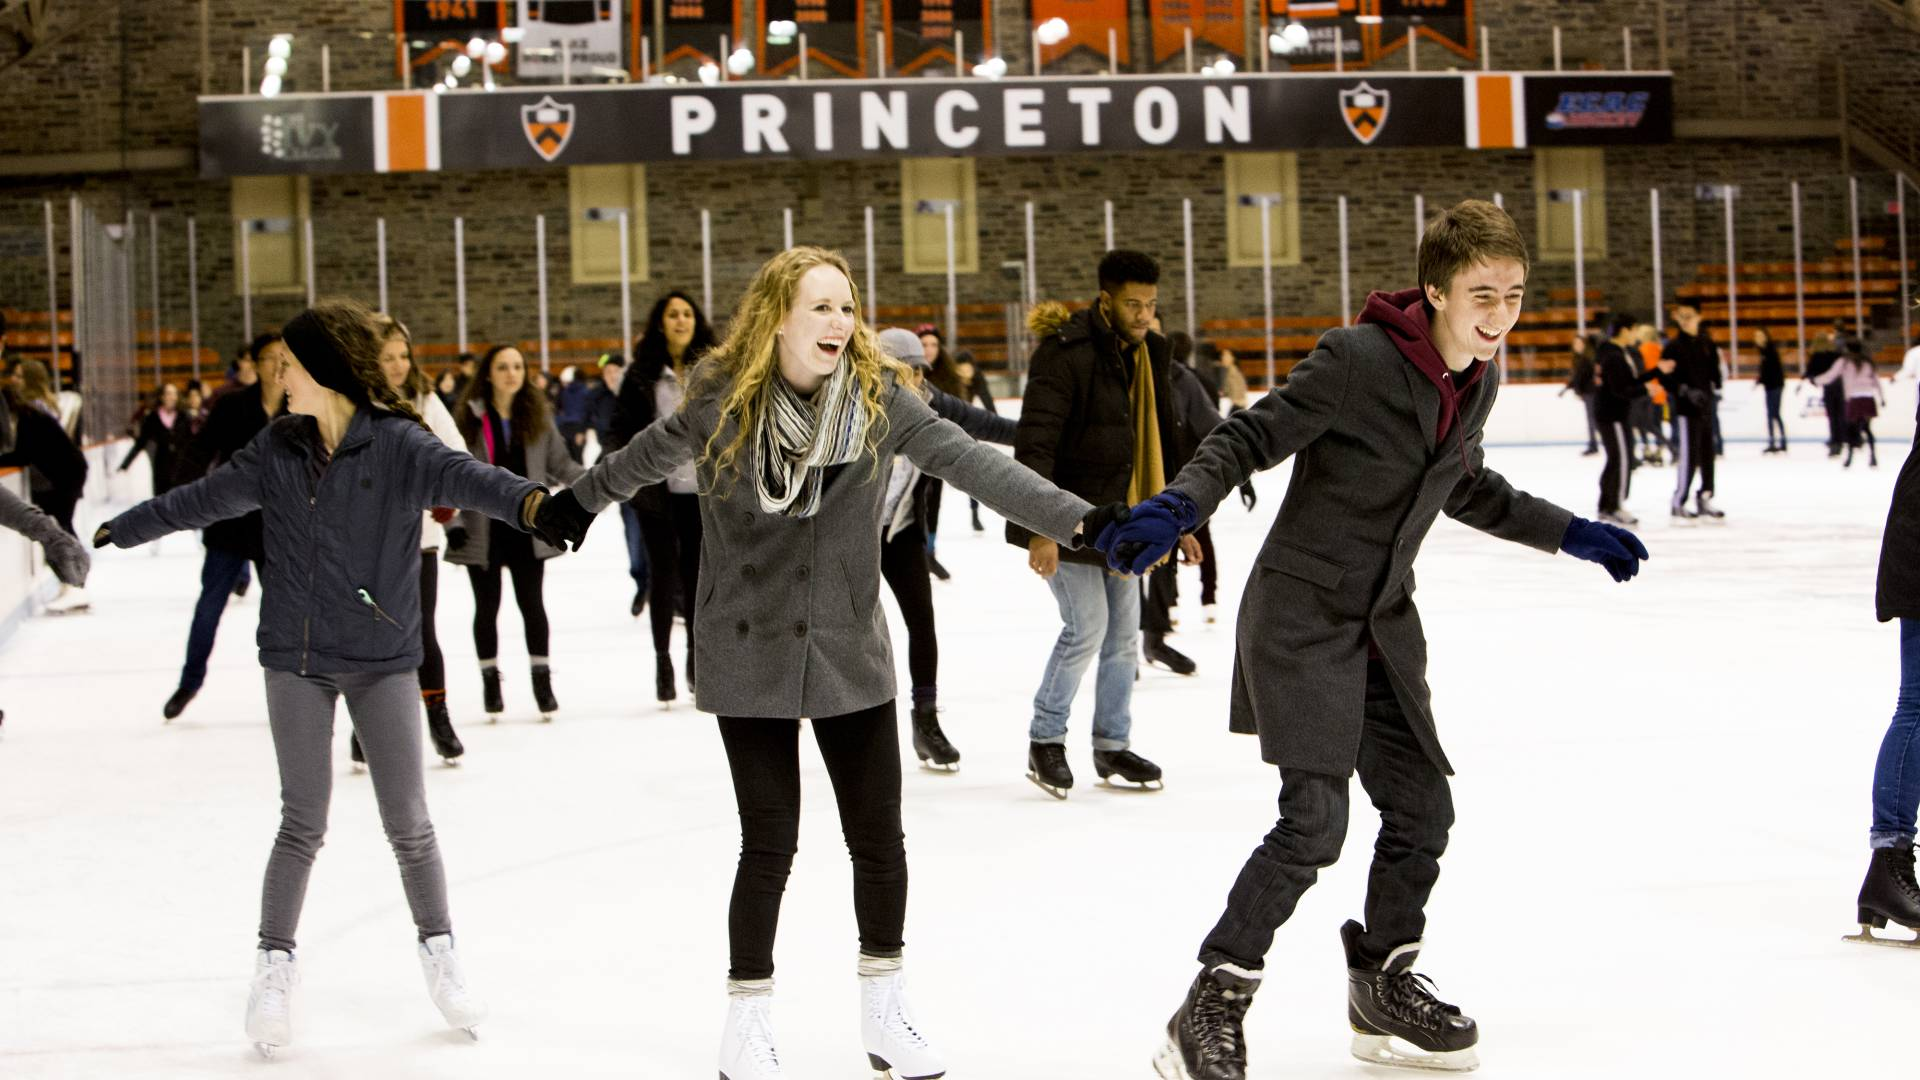 Students skating at Baker Rink